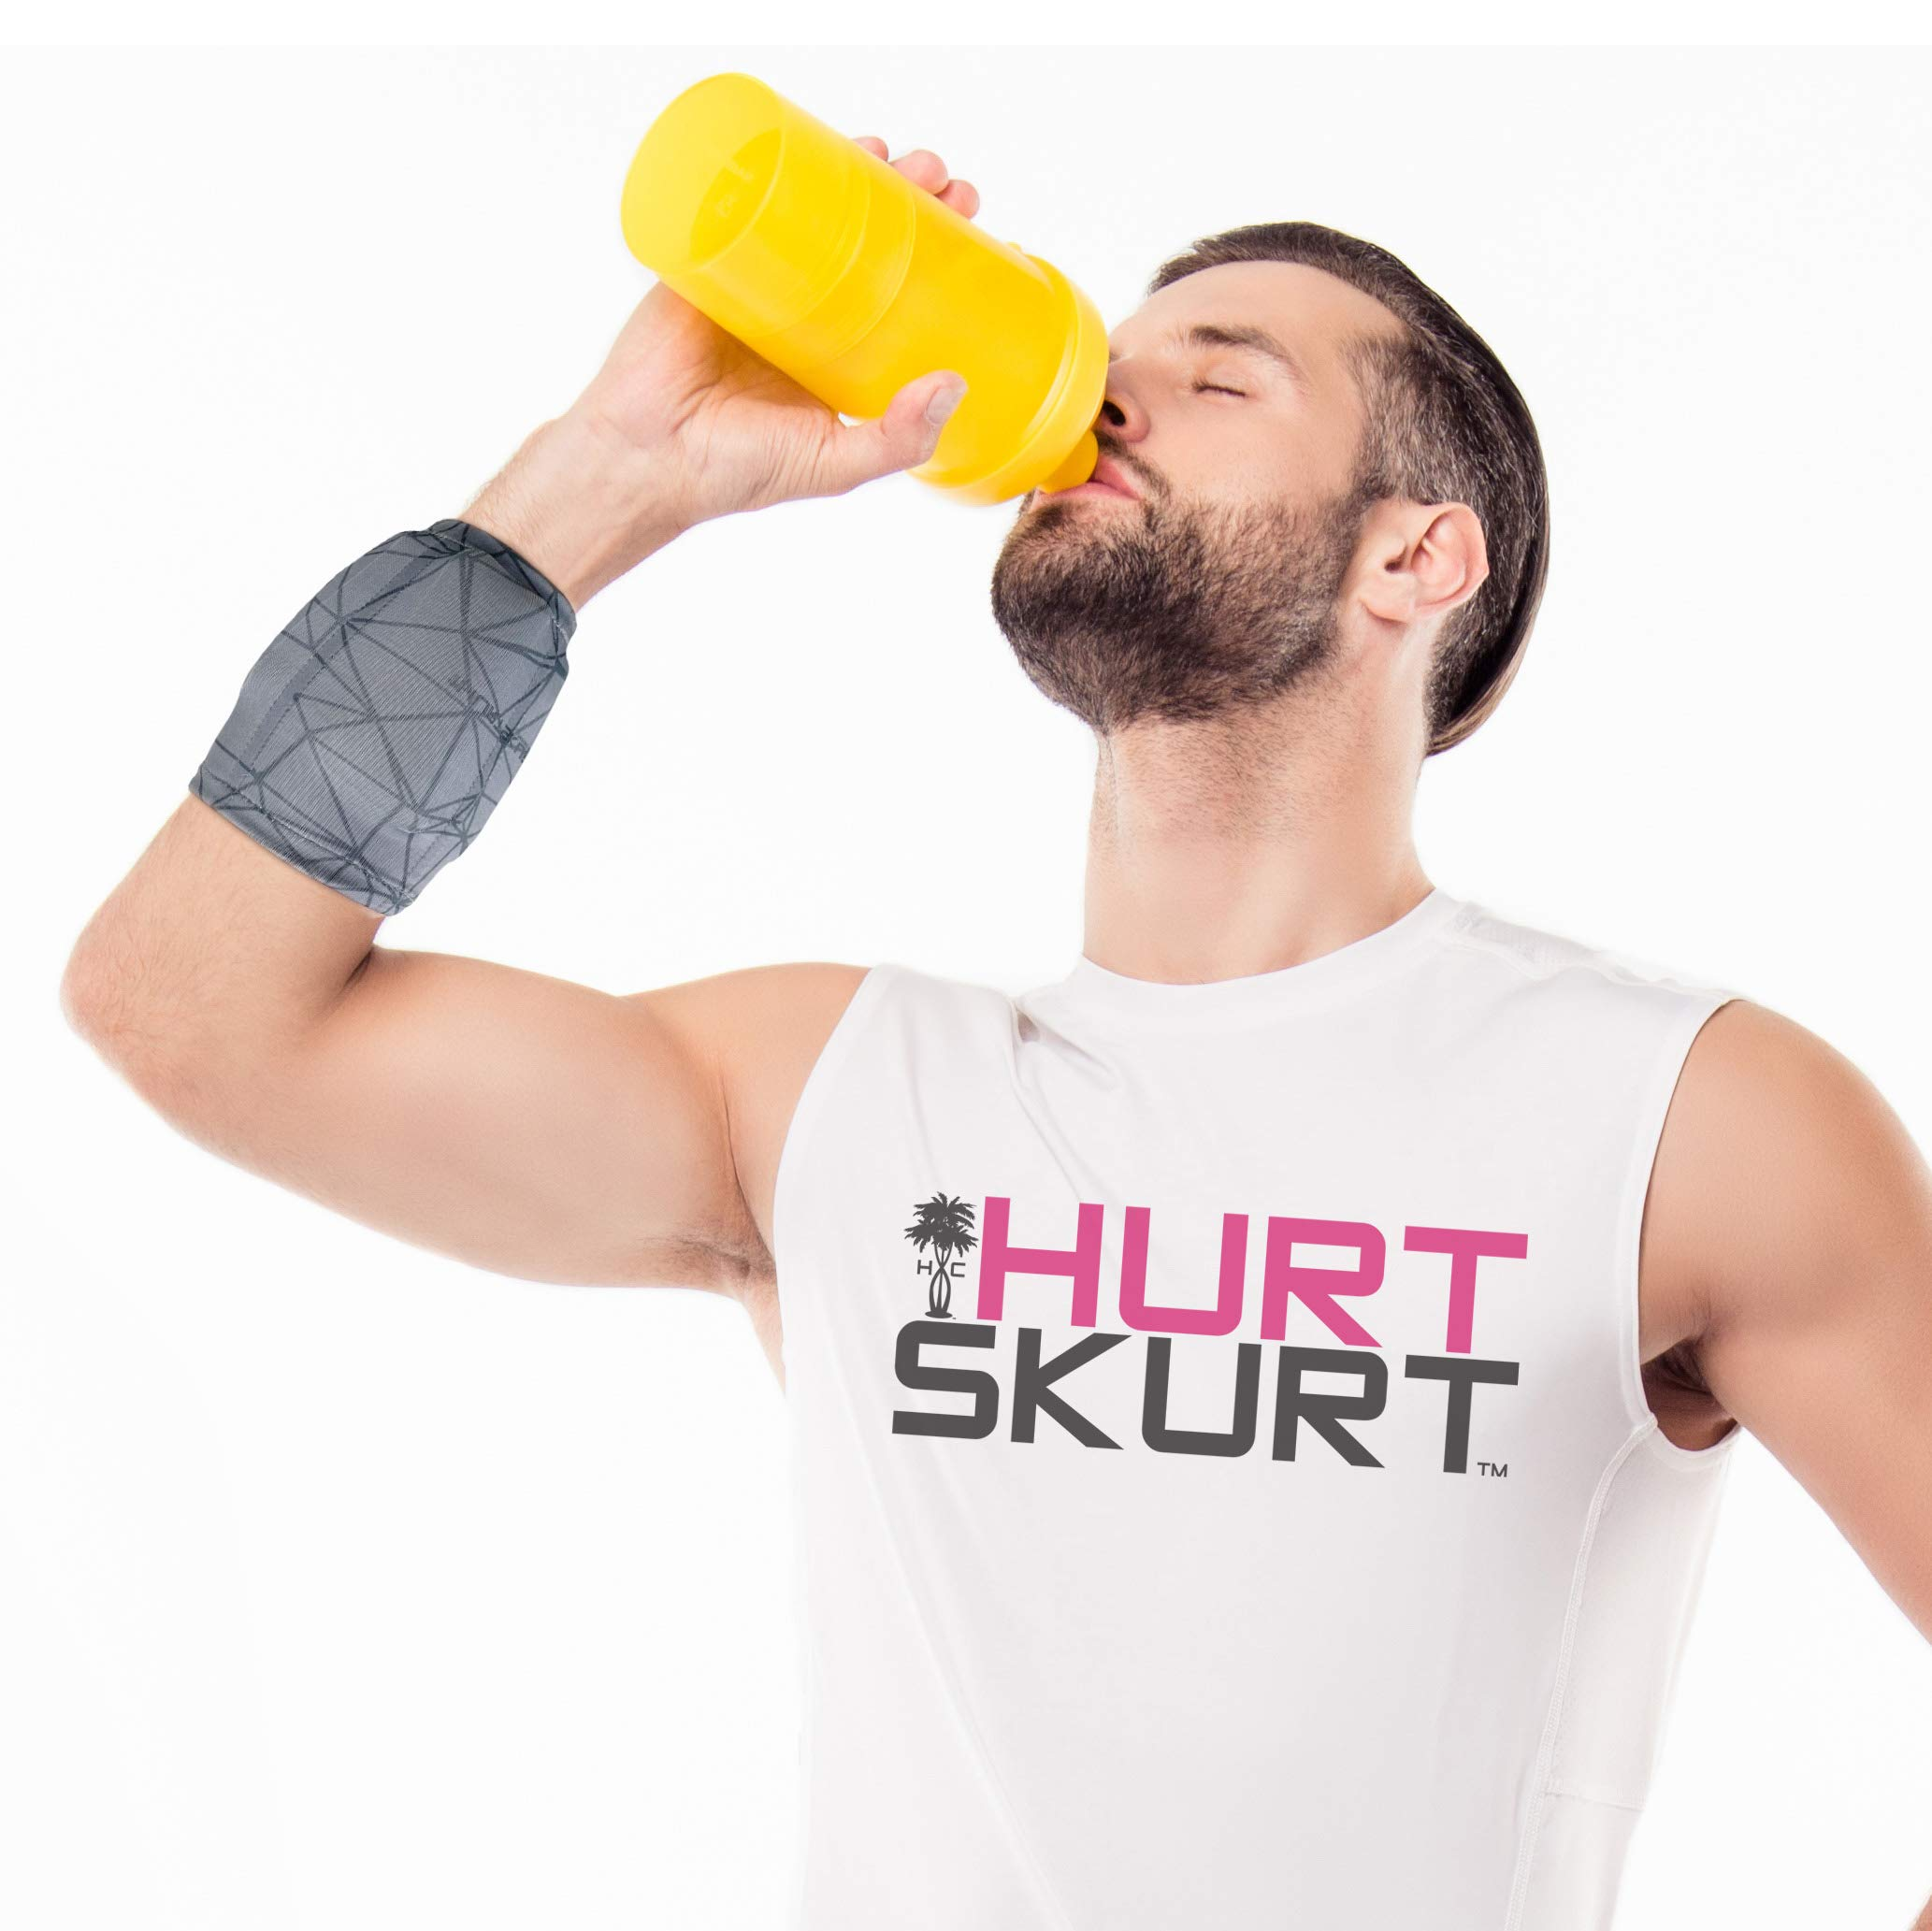 HurtSkurt - 2 in 1 - Harness-Free Fashionable Cold Therapy Compression Gel Sleeve & Ice Pack Stretch-to-Fit Small (Blackout)